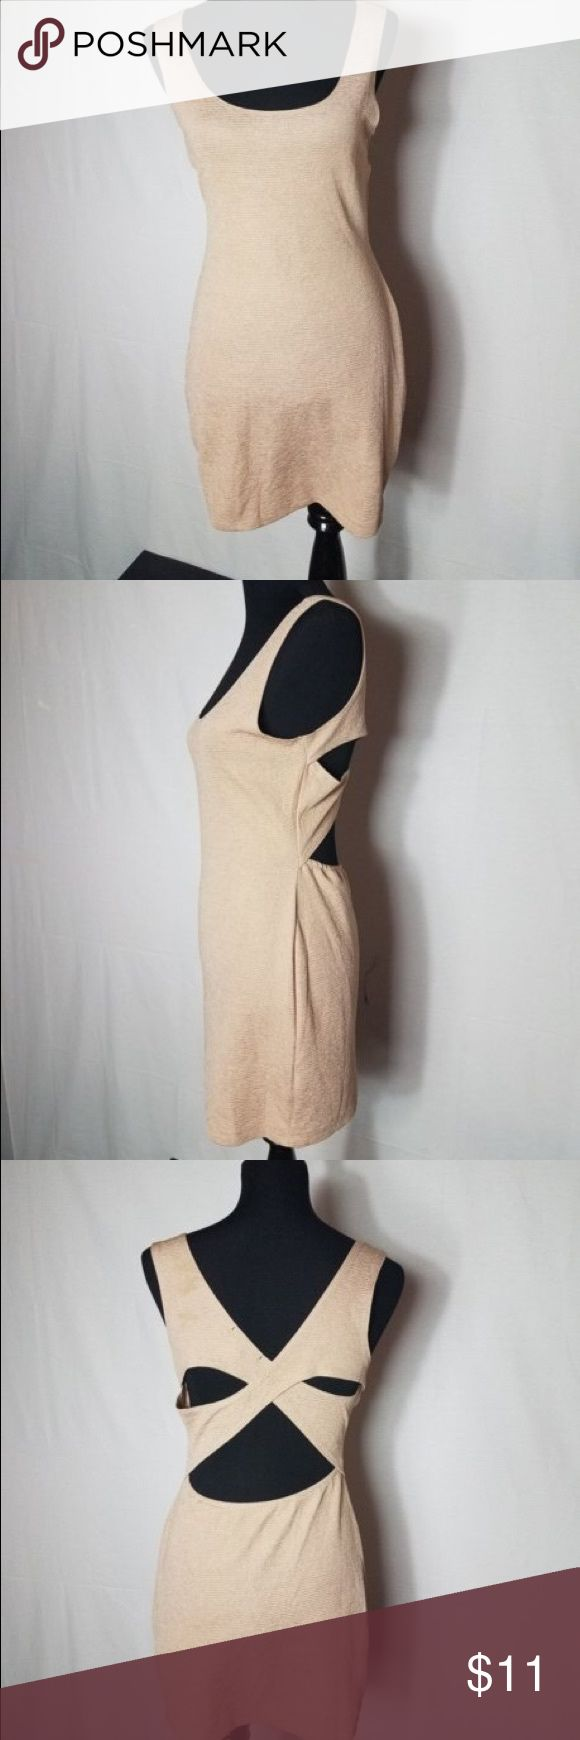 LOVE CULTURE SIZE LARGE BEIGE MINI DRESS Very beautiful dress to wear for a nice casual day out with family or friends! Very classy!! Love Culture Dresses Mini